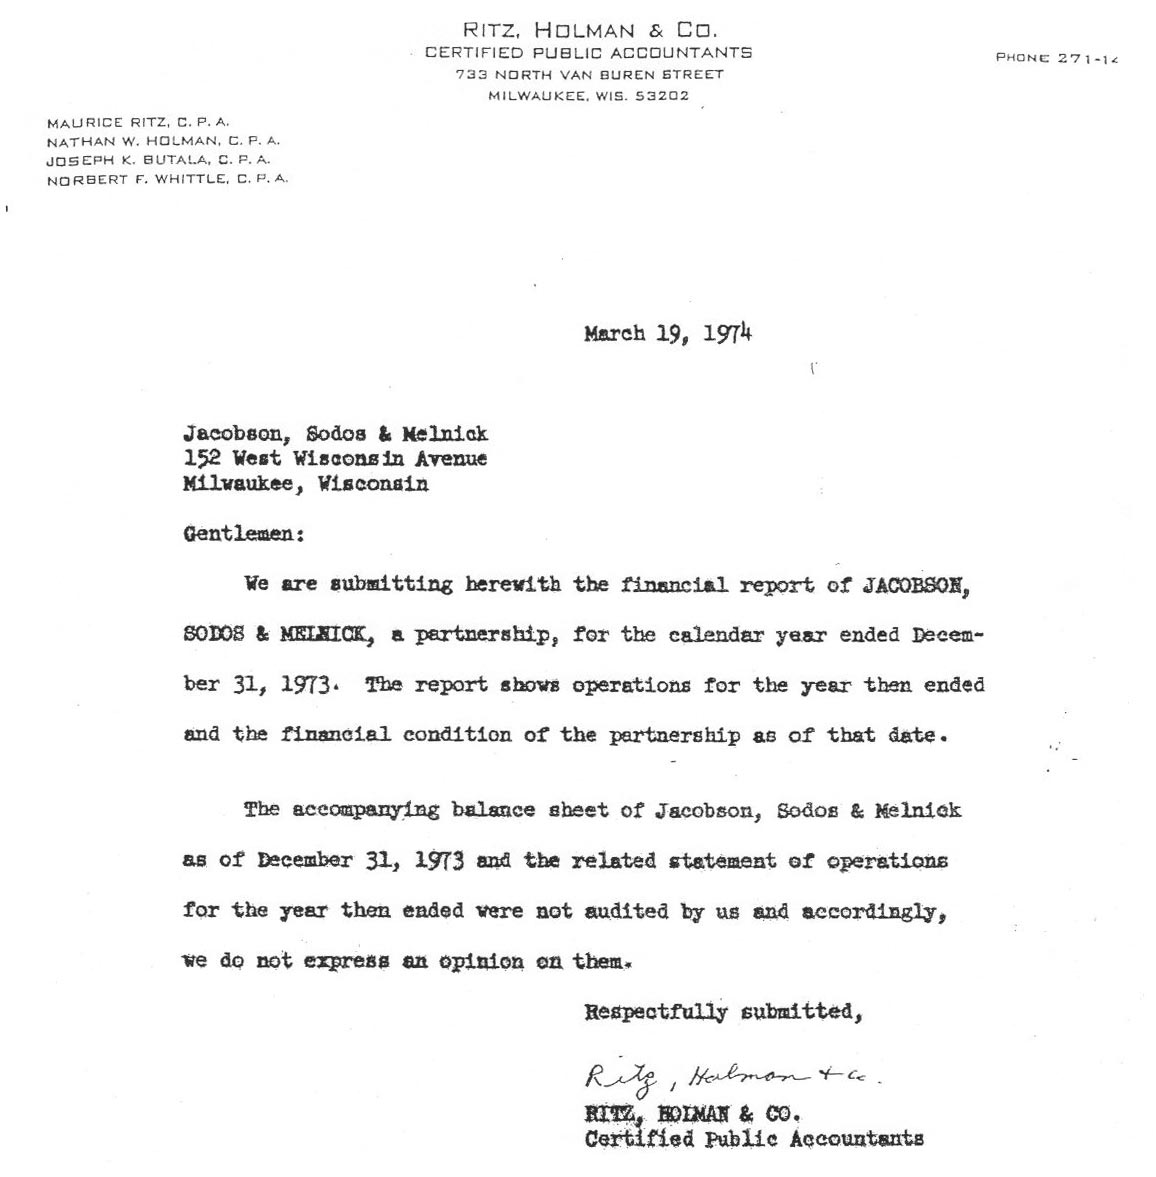 Wisconsin illinois iowa injury law firm hupy and abraham sc accountants letter march 19 1974 madrichimfo Images